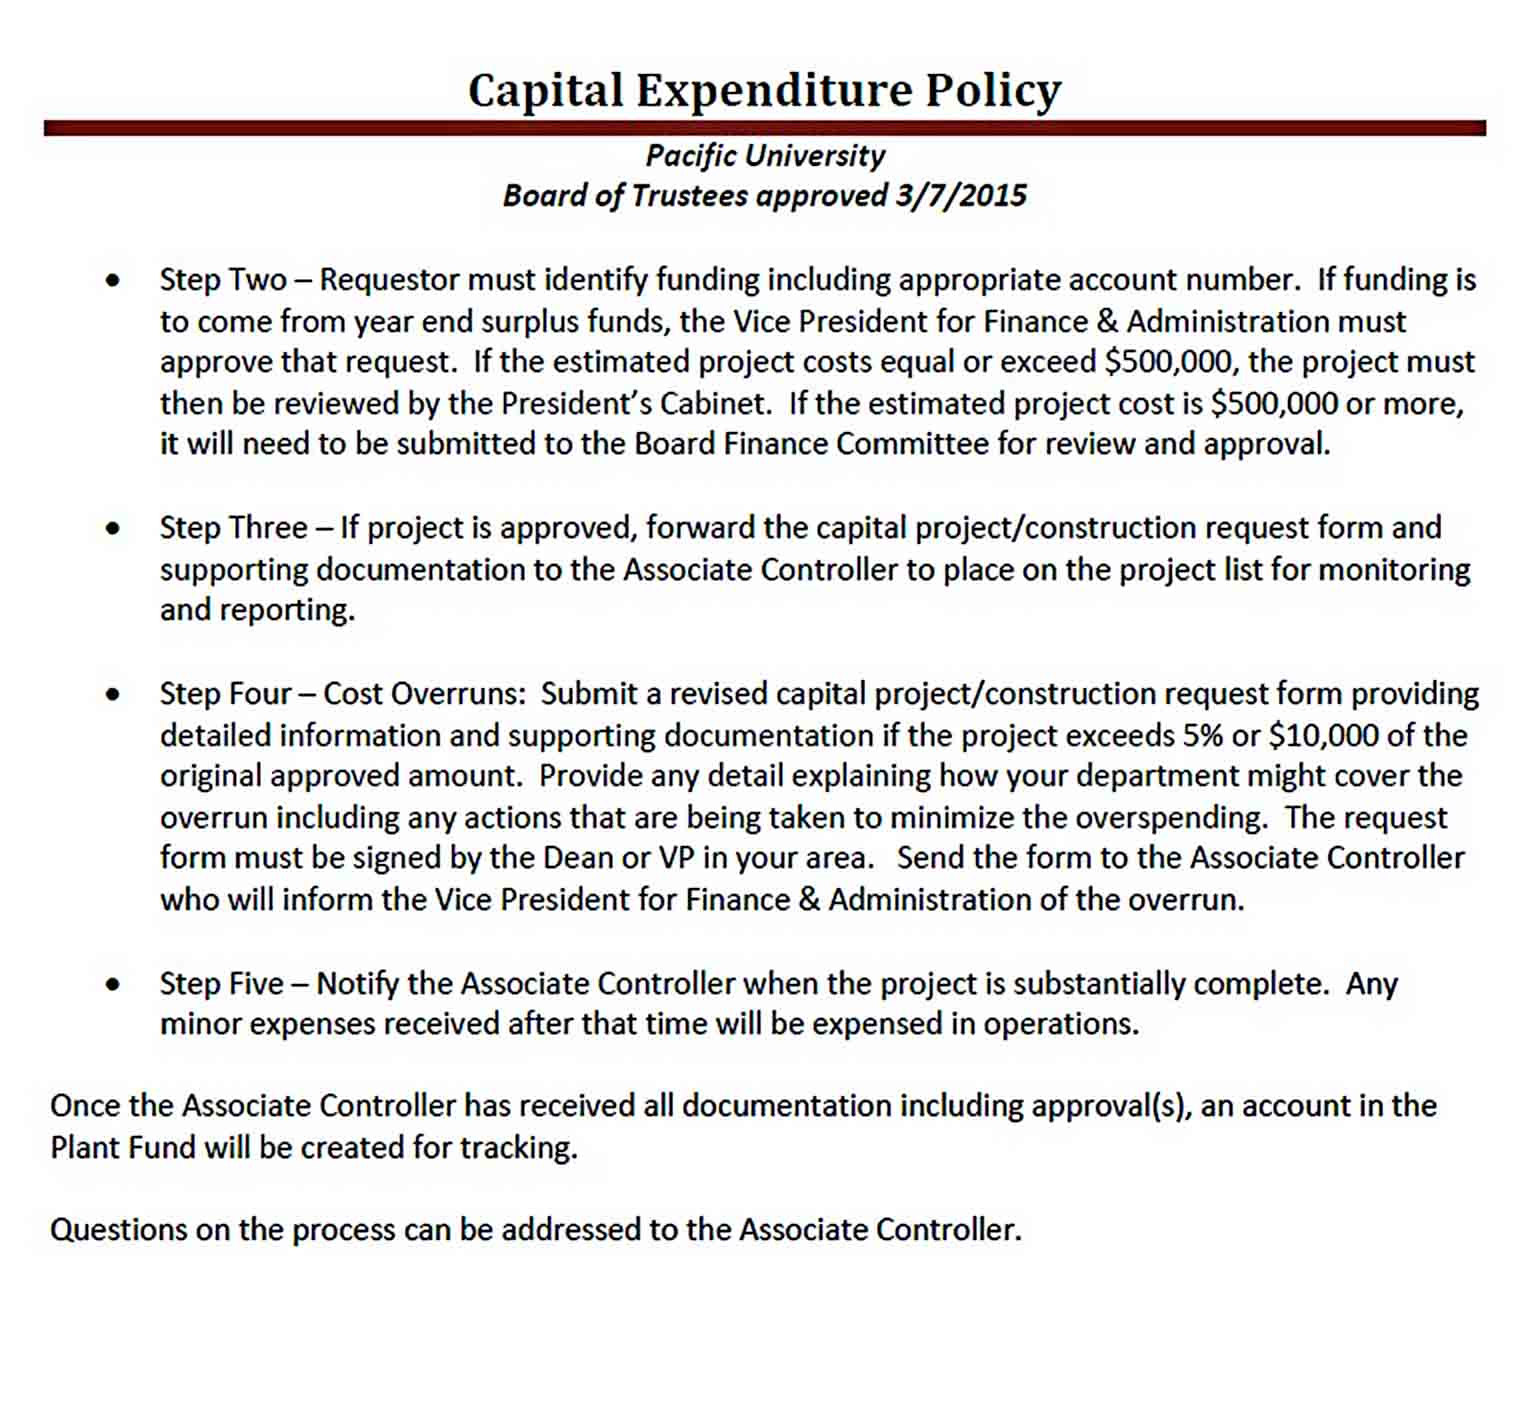 Sample Capital Expenditure Budget Policy PDF Download sample